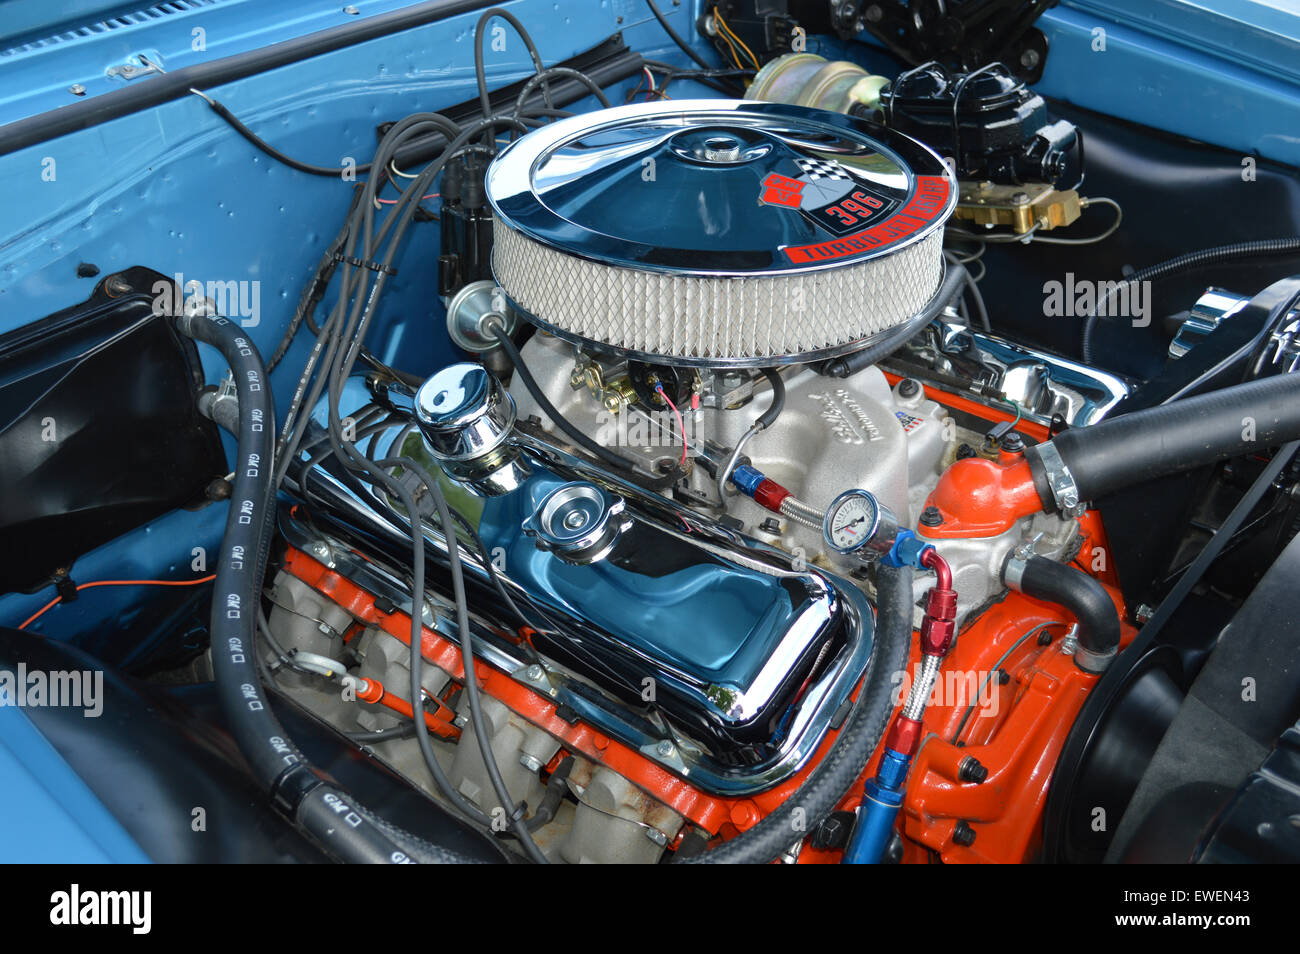 A 396 Big Block engine in a Chevrolet Chevelle.